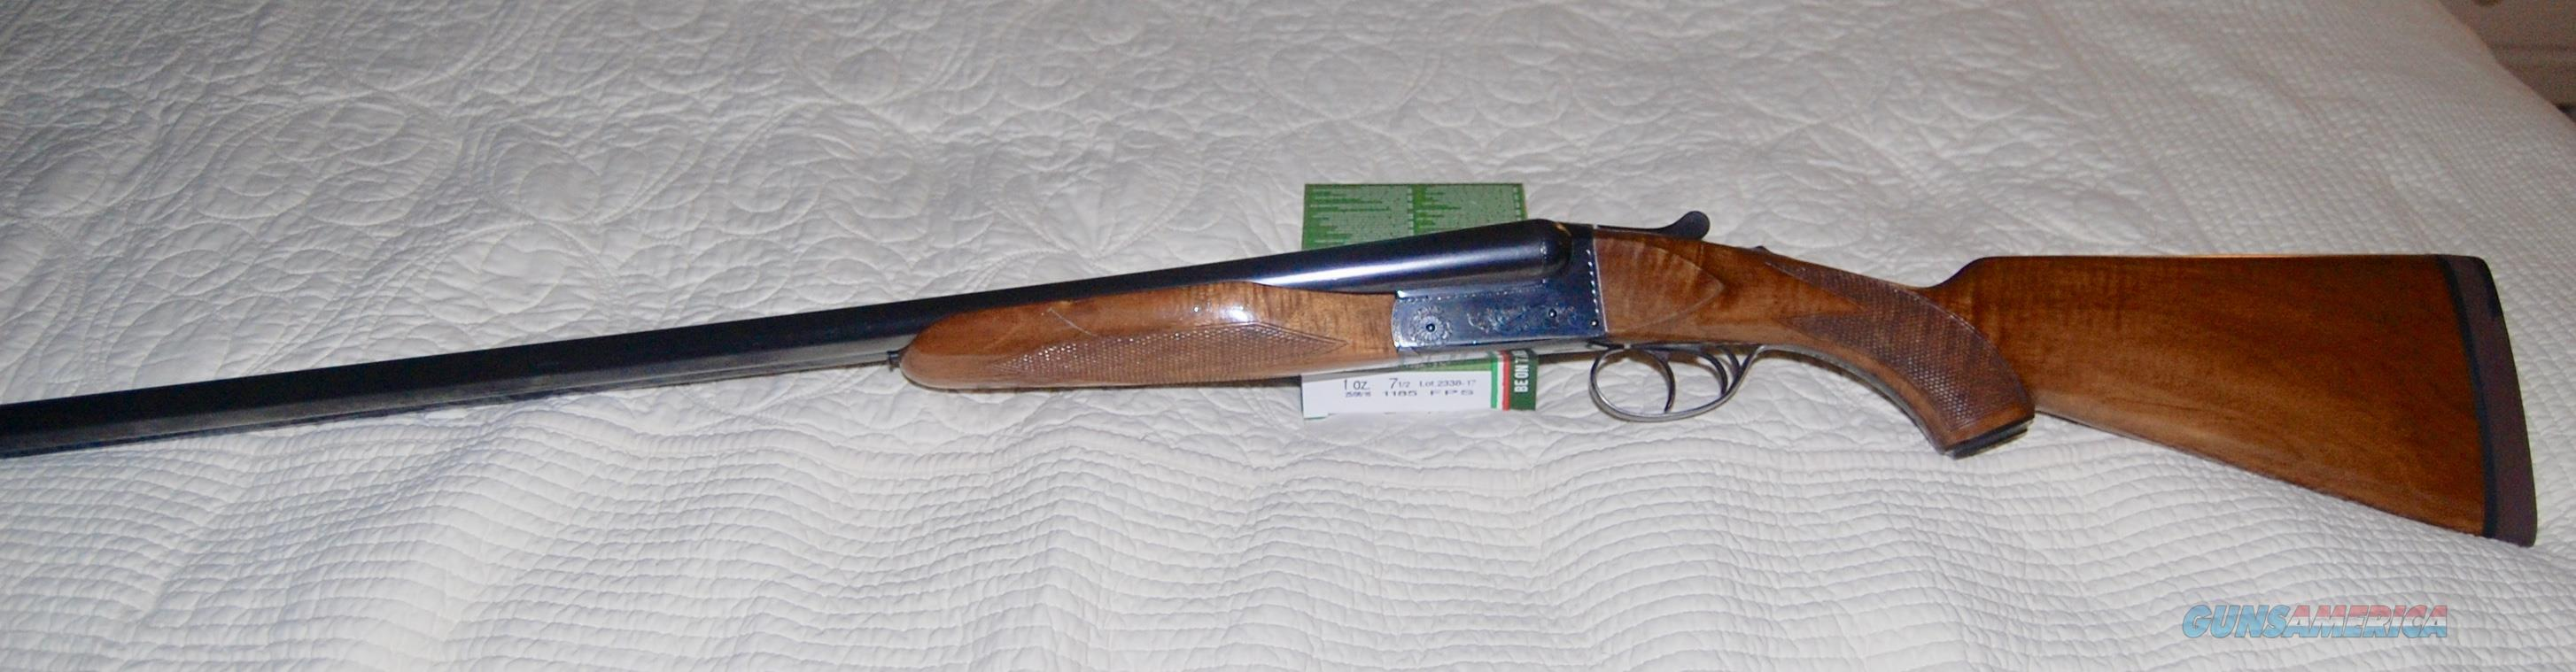 Charles Daly by Miroku Model 500 SXS 12ga.  Guns > Shotguns > Charles Daly Shotguns > SxS